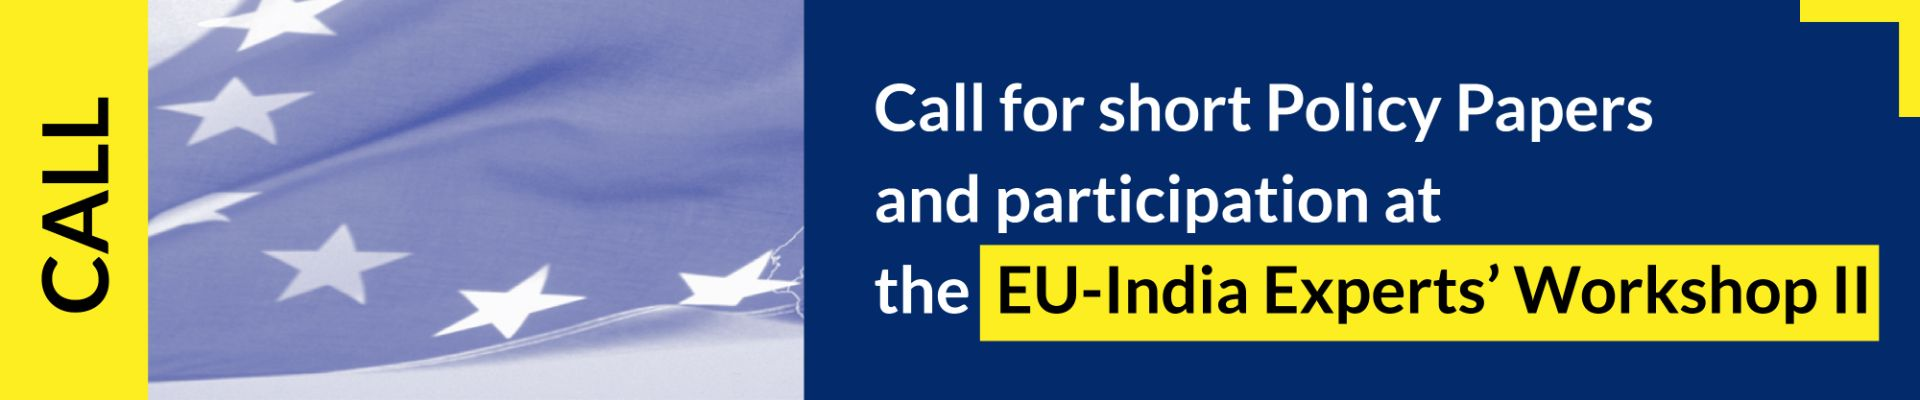 Call for short Policy Papers and participation at the EU-India Experts' Workshop in March 2021